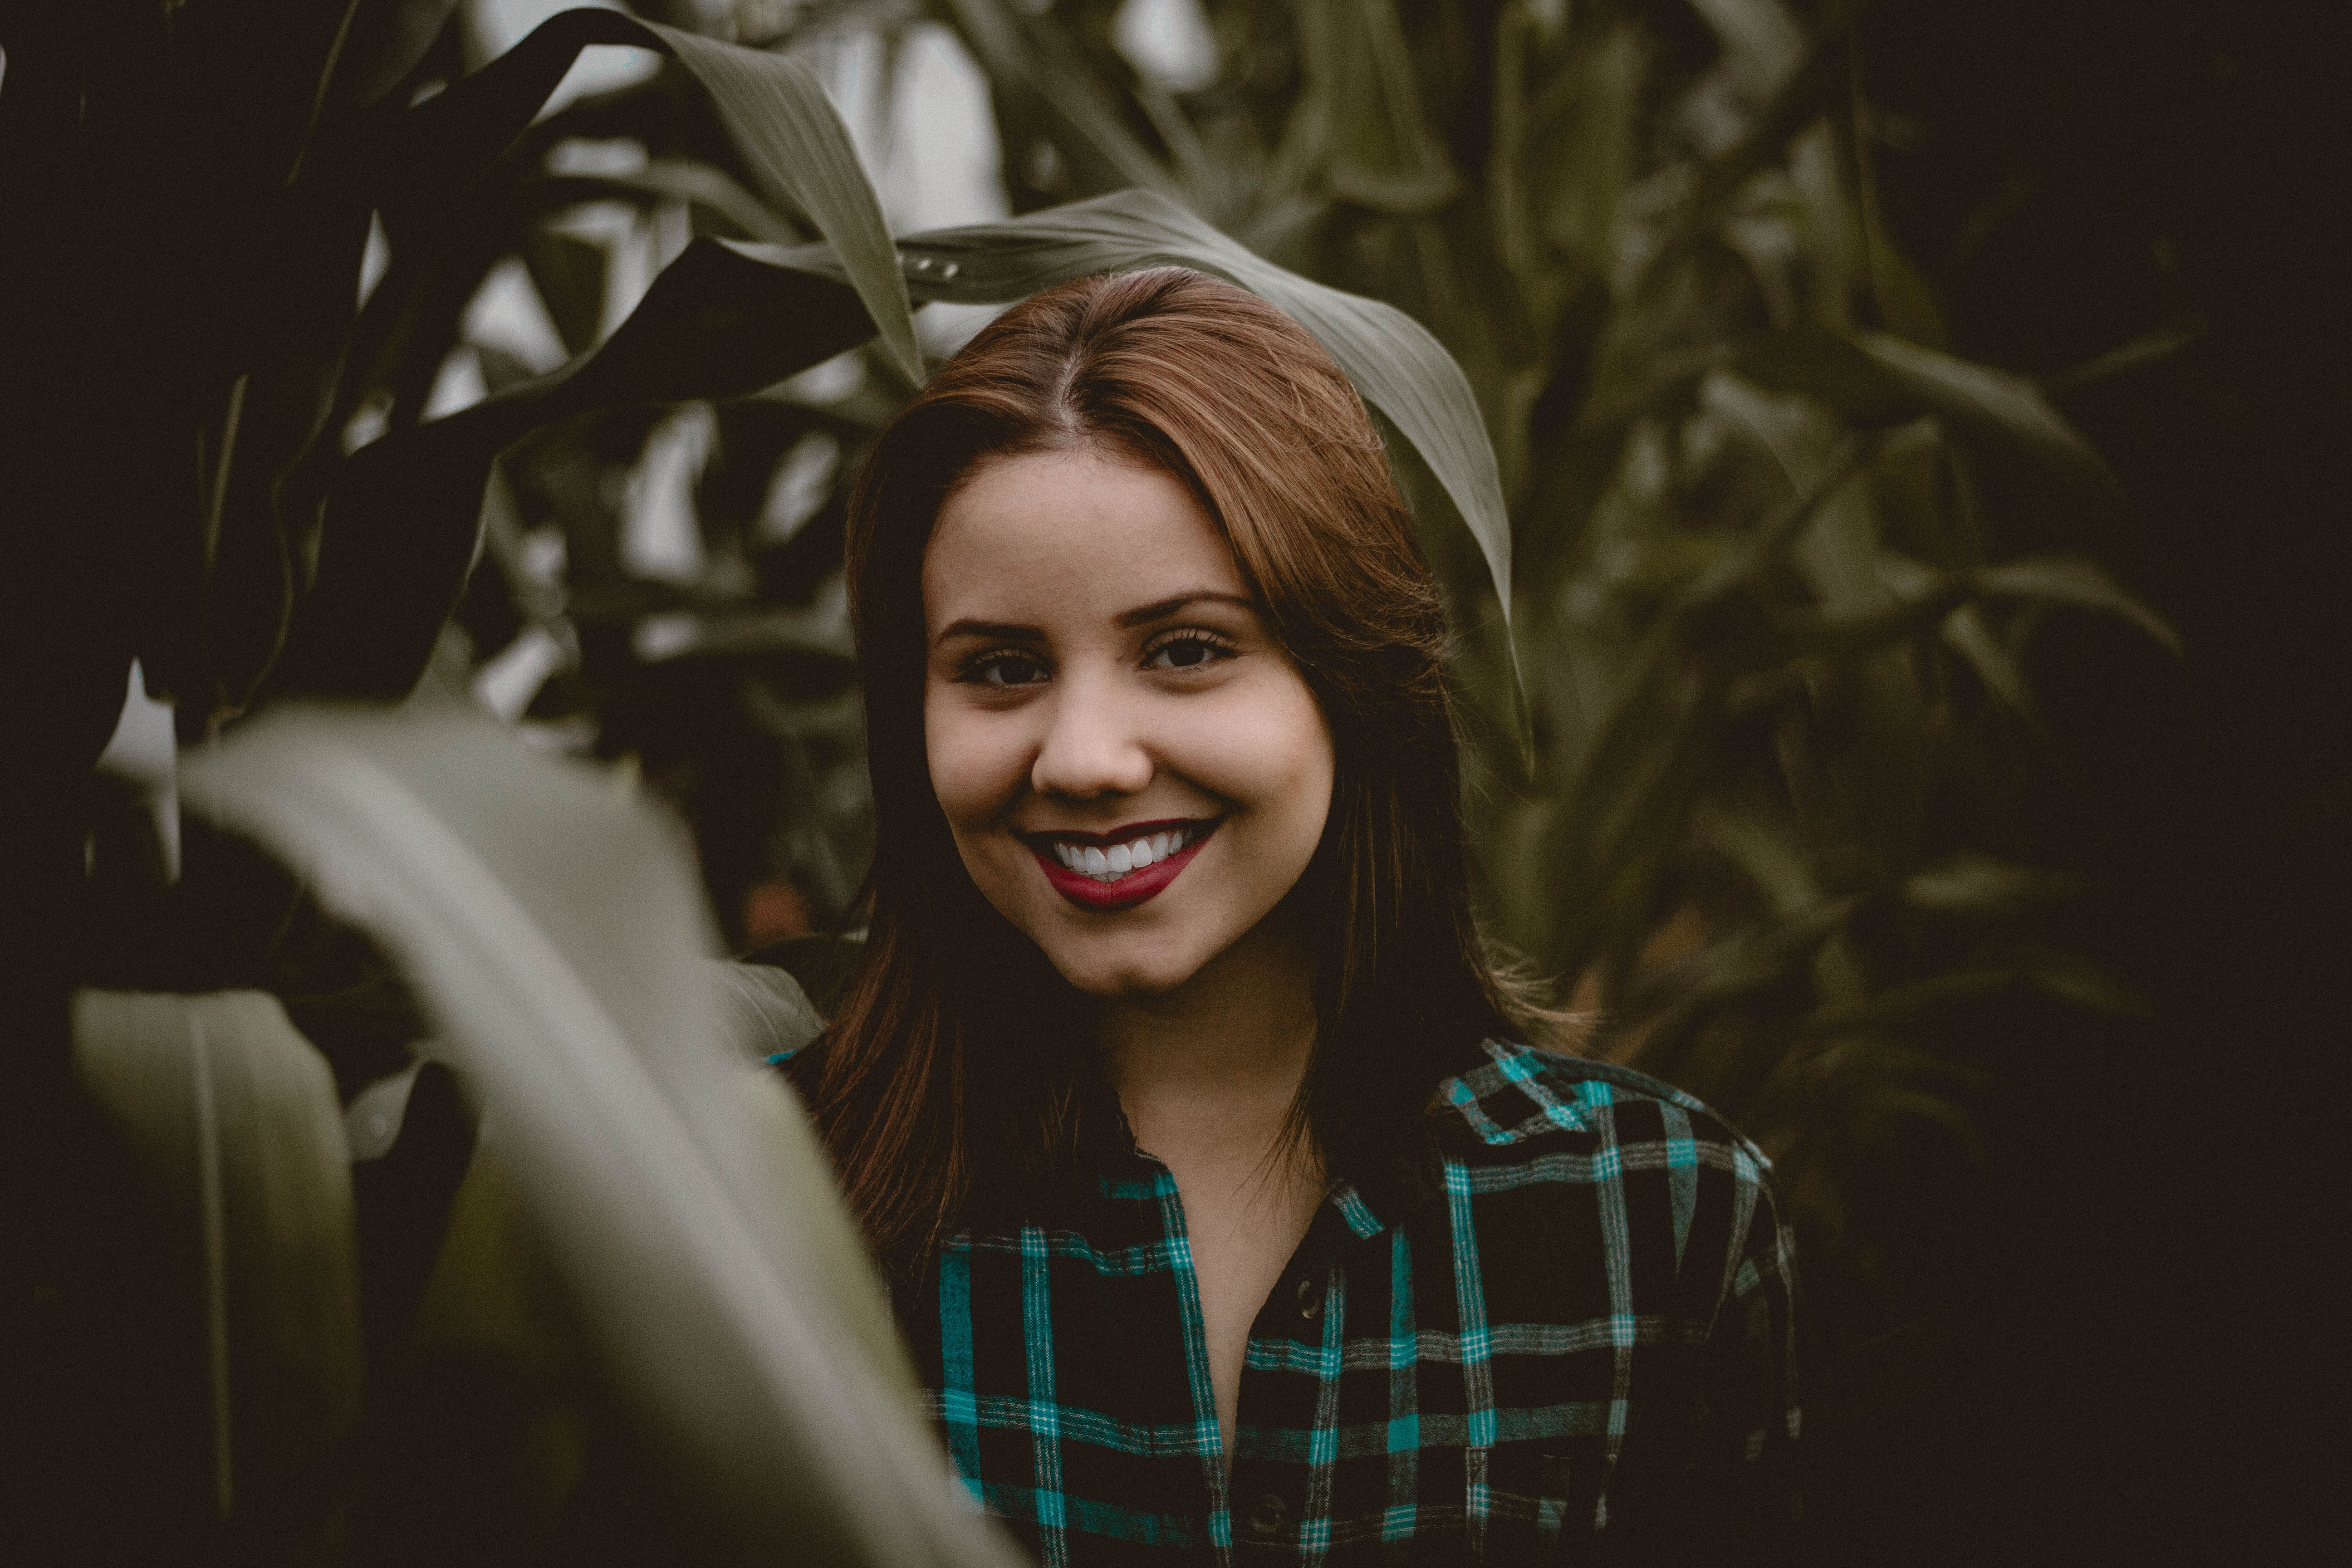 A woman in crimson lipstick and a plaid shirt smiles in a cornfield